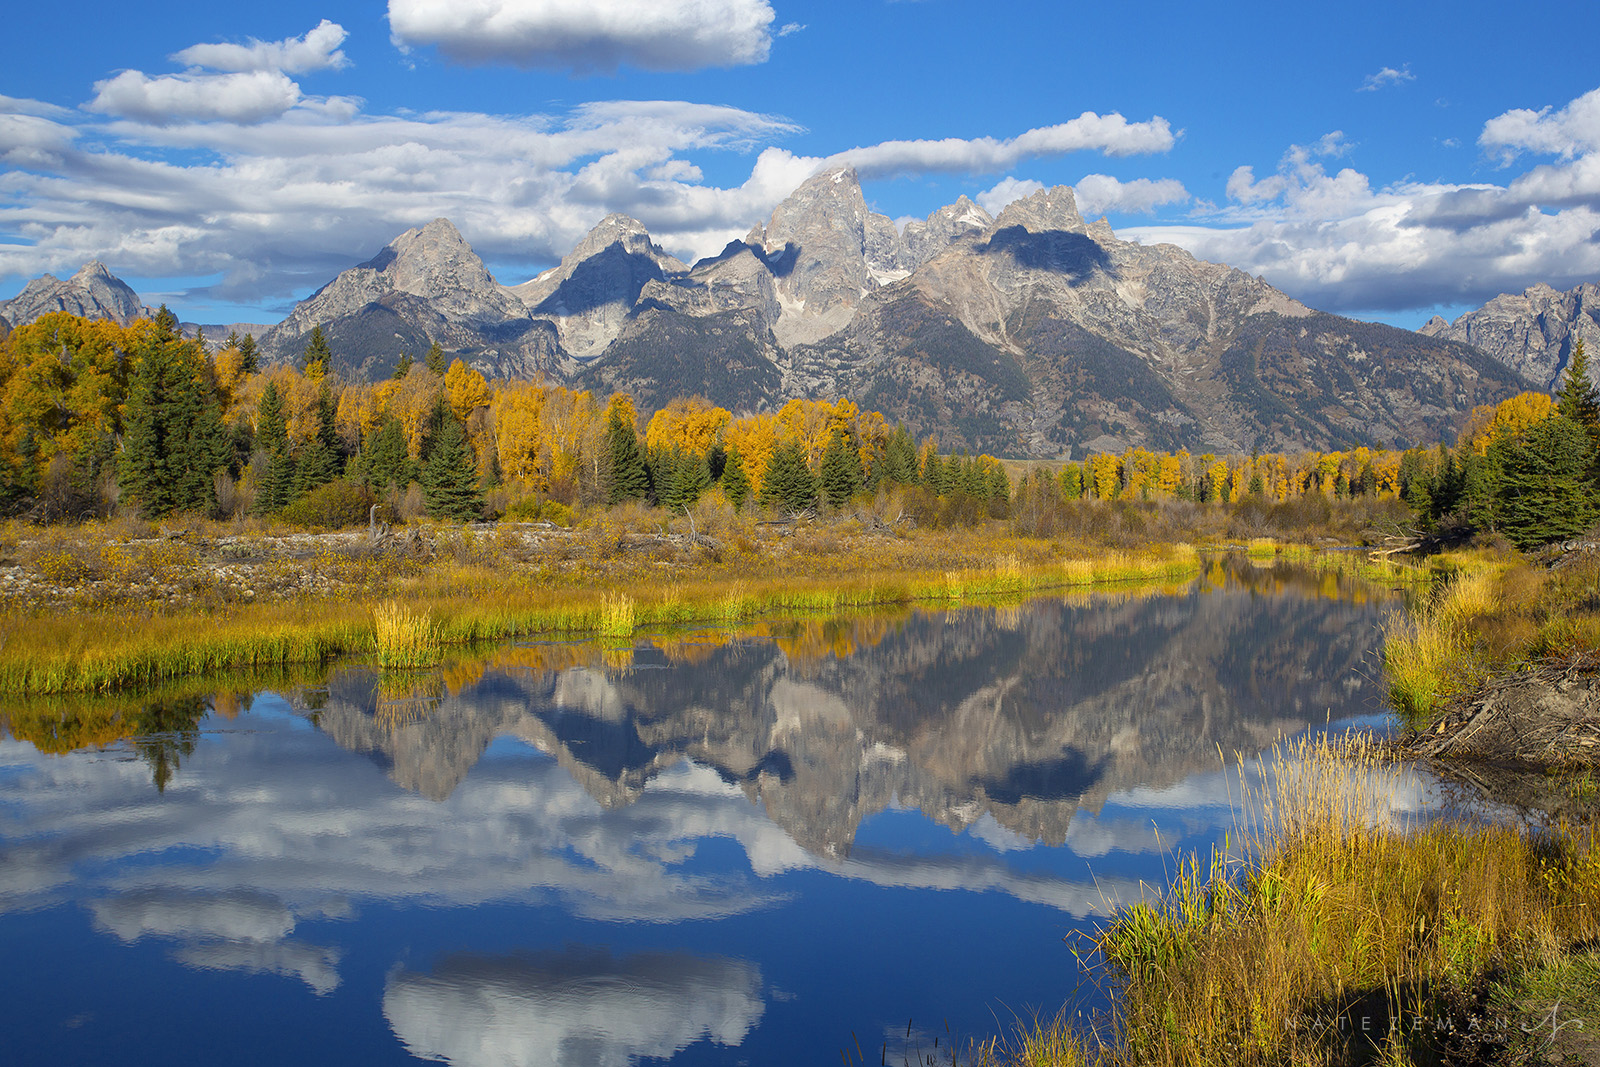 schwabachers landing, reflection, tetons, grand teton national park, snake river, autumn, fall, photo